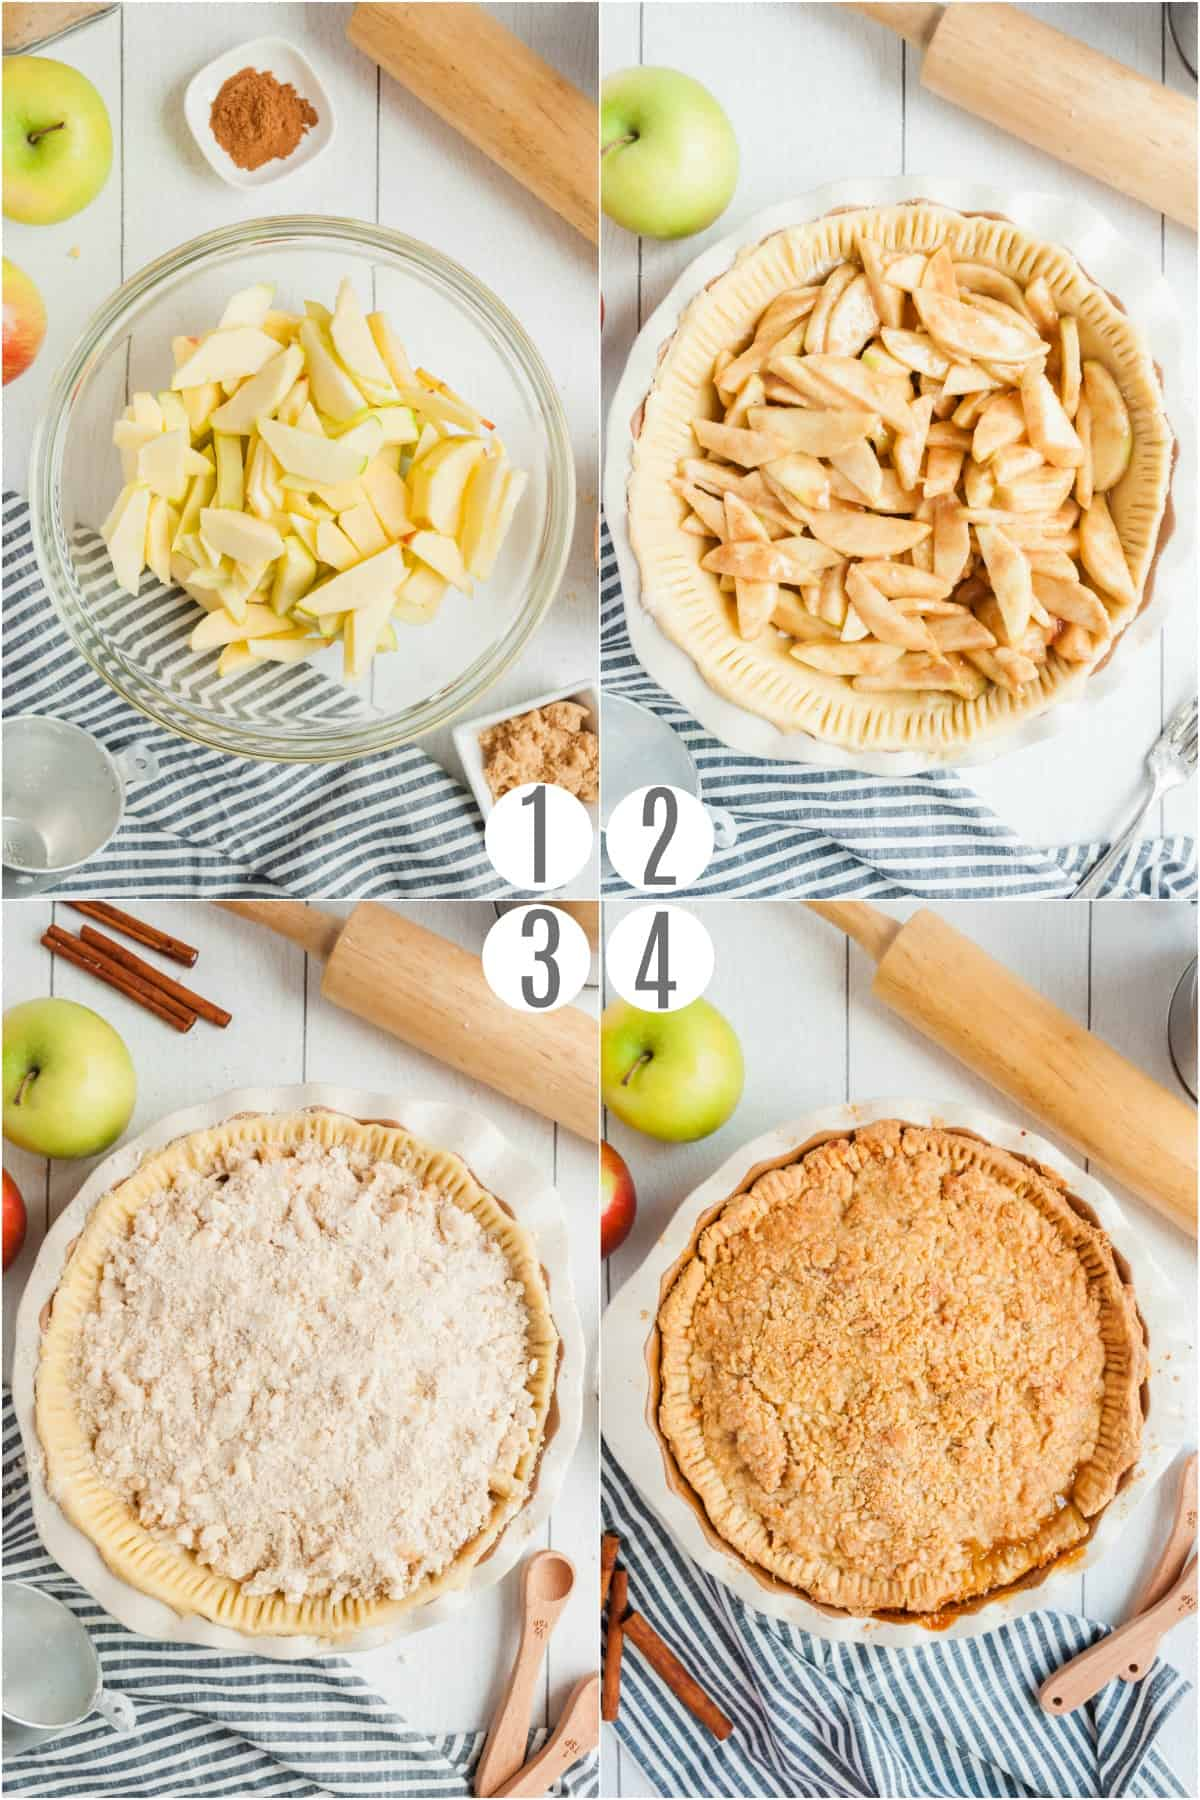 Step by step photos showing how to make a french apple pie.